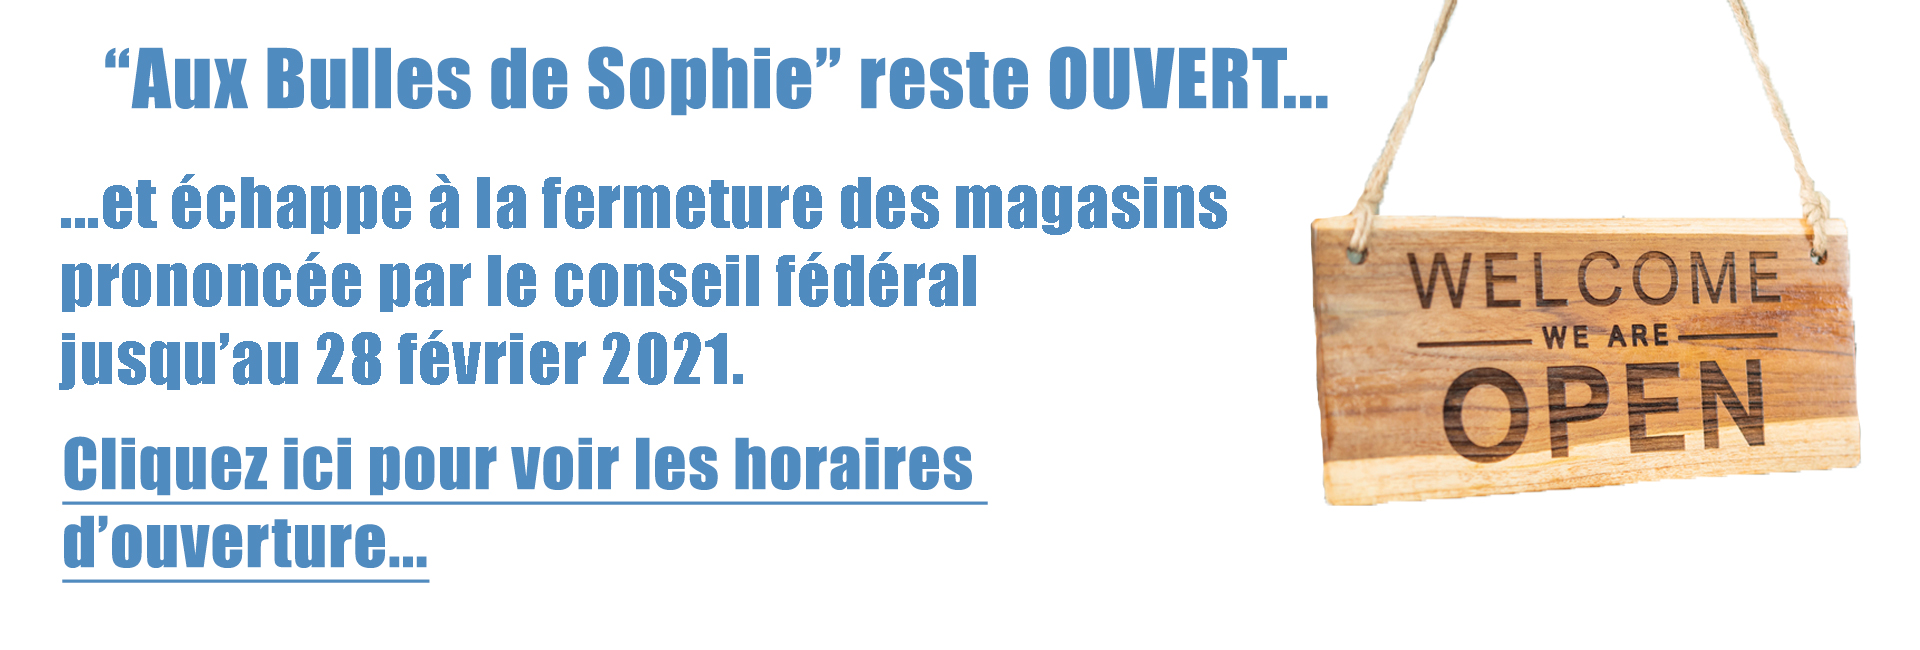 ouverture_magasin4